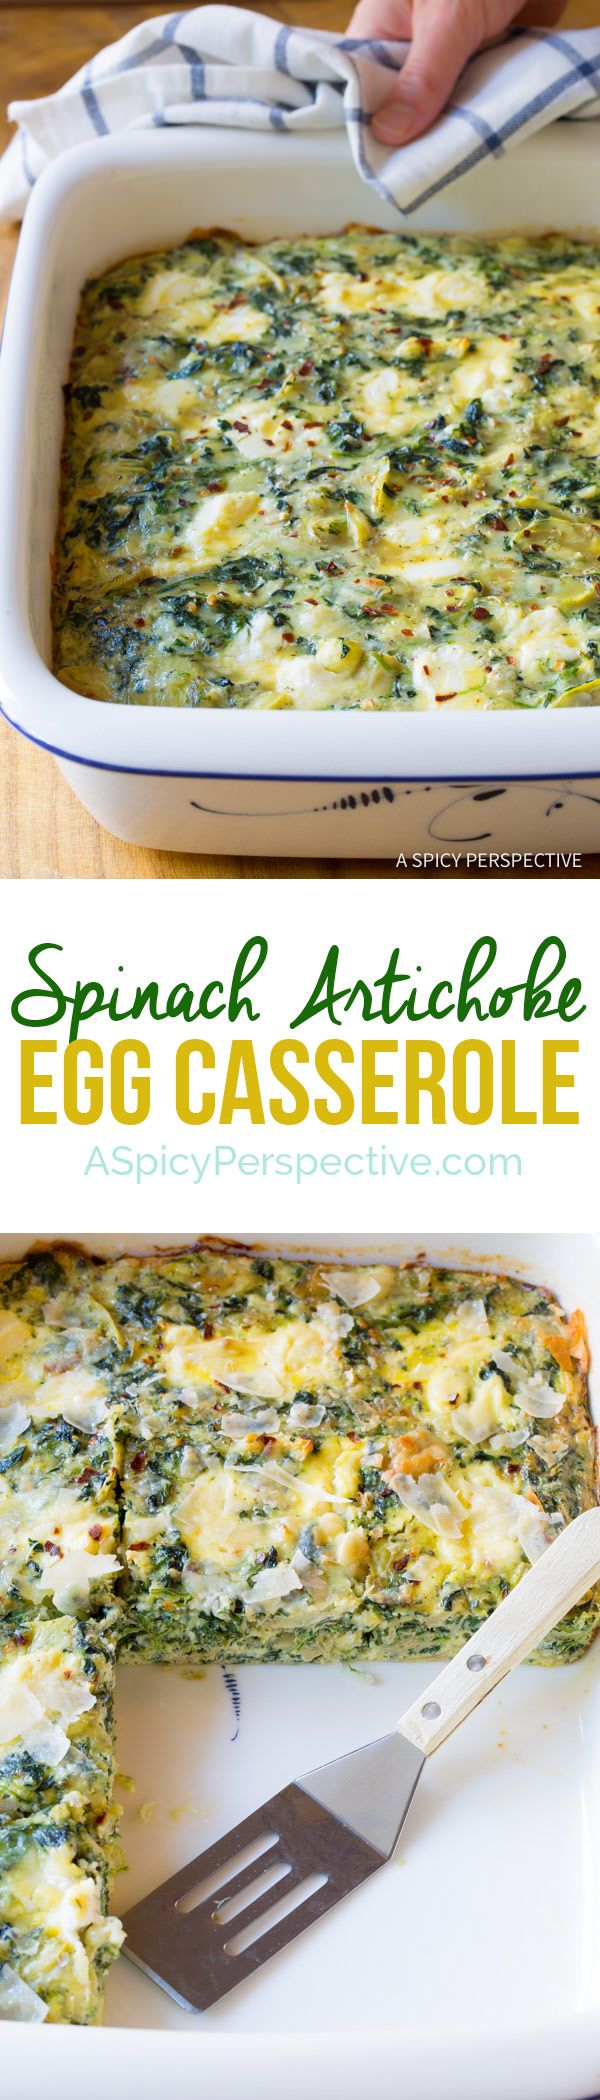 Savory Spinach Artichoke Egg Casserole (Low Carb, Vegetarian & Gluten Free!) | ASpicyPerspective.com